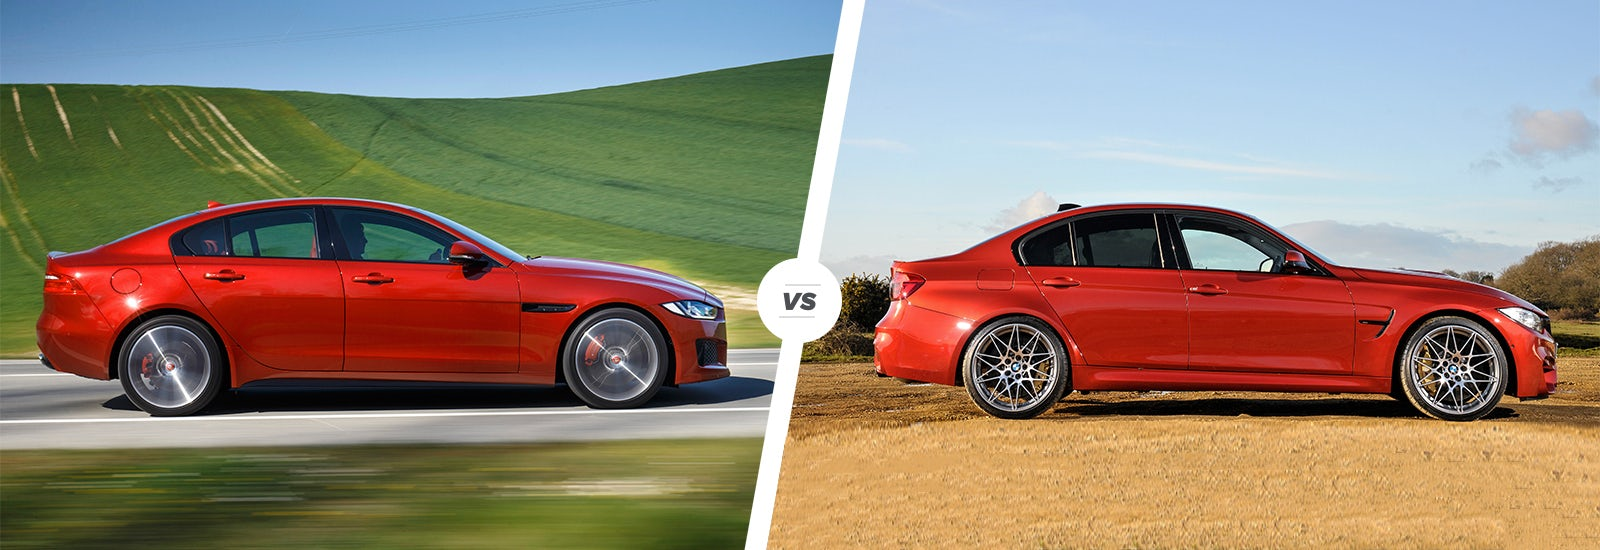 Jaguar Xe S Vs Bmw M3 Which Is Best Carwow